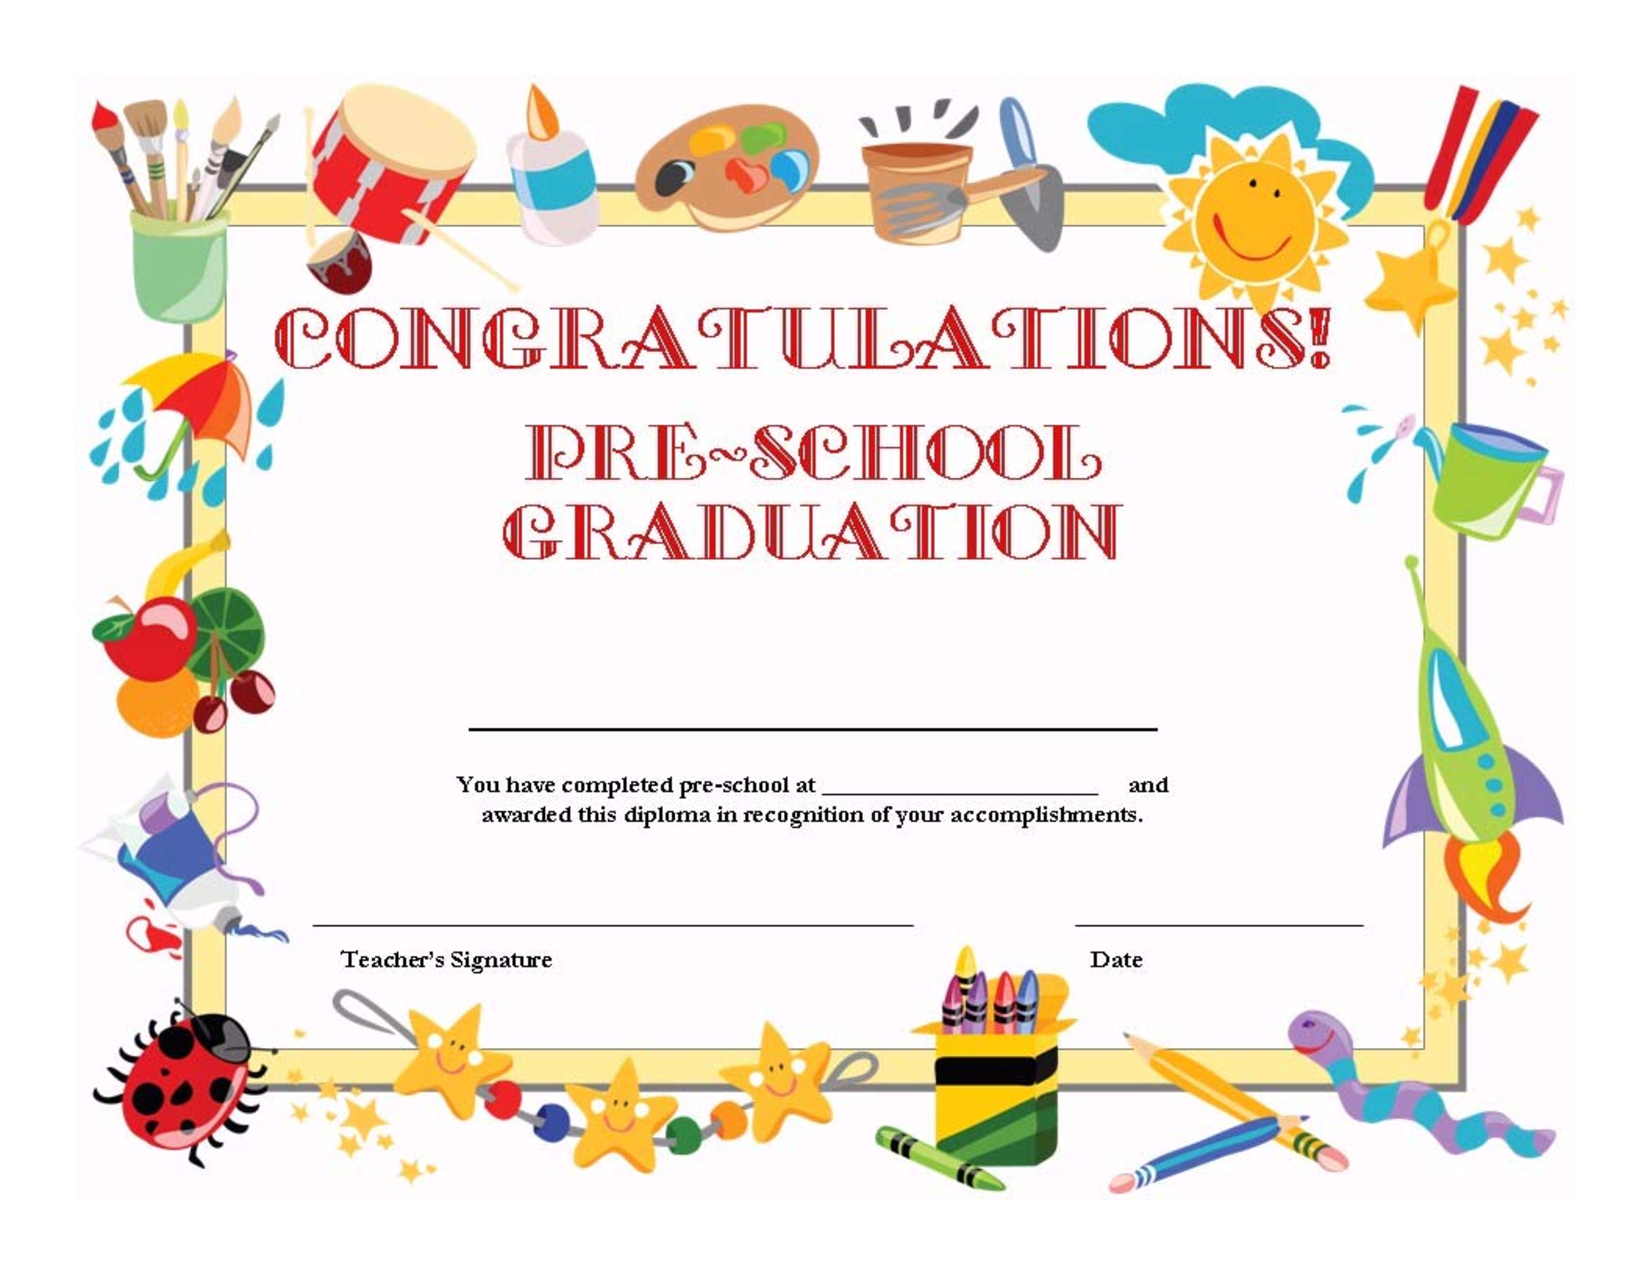 Preschool Graduation Certificate Template Free | K1,2,3 Graduation - Free Printable Children's Certificates Templates